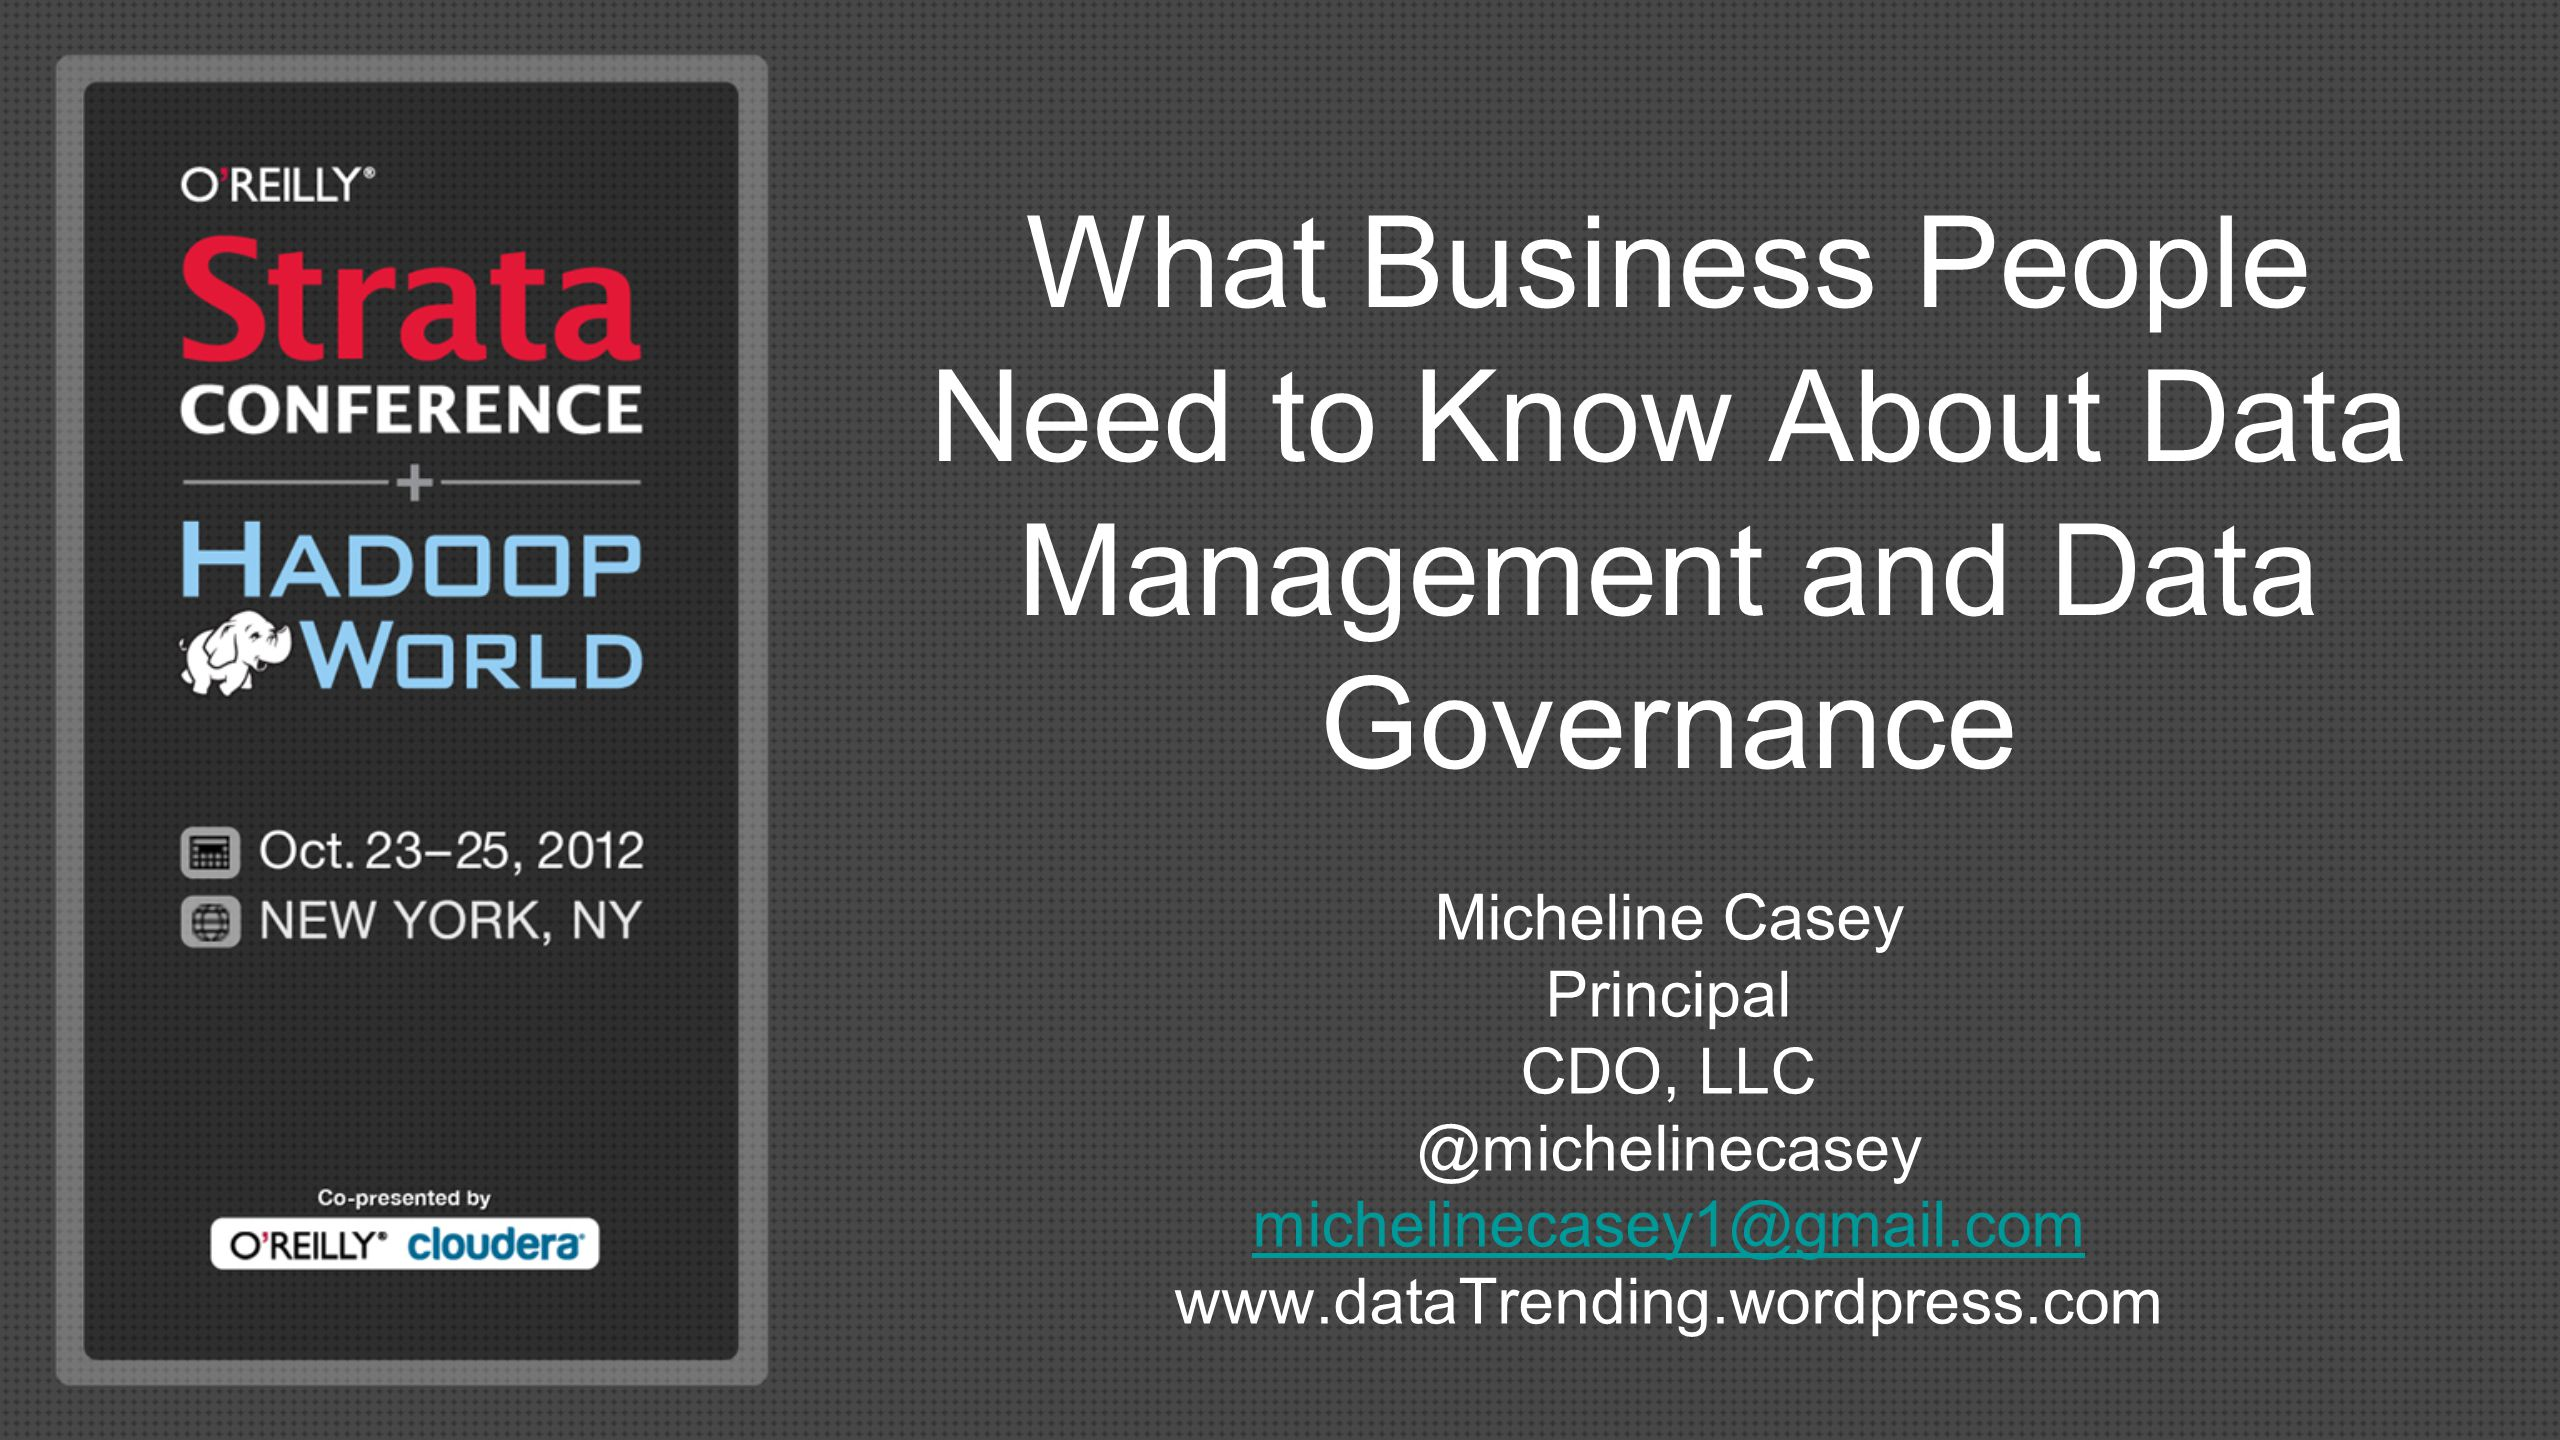 What Business People Need to Know About Data Management and Data Governance Micheline Casey Principal CDO, LLC @michelinecasey michelinecasey1@gmail.com www.dataTrending.wordpress.com